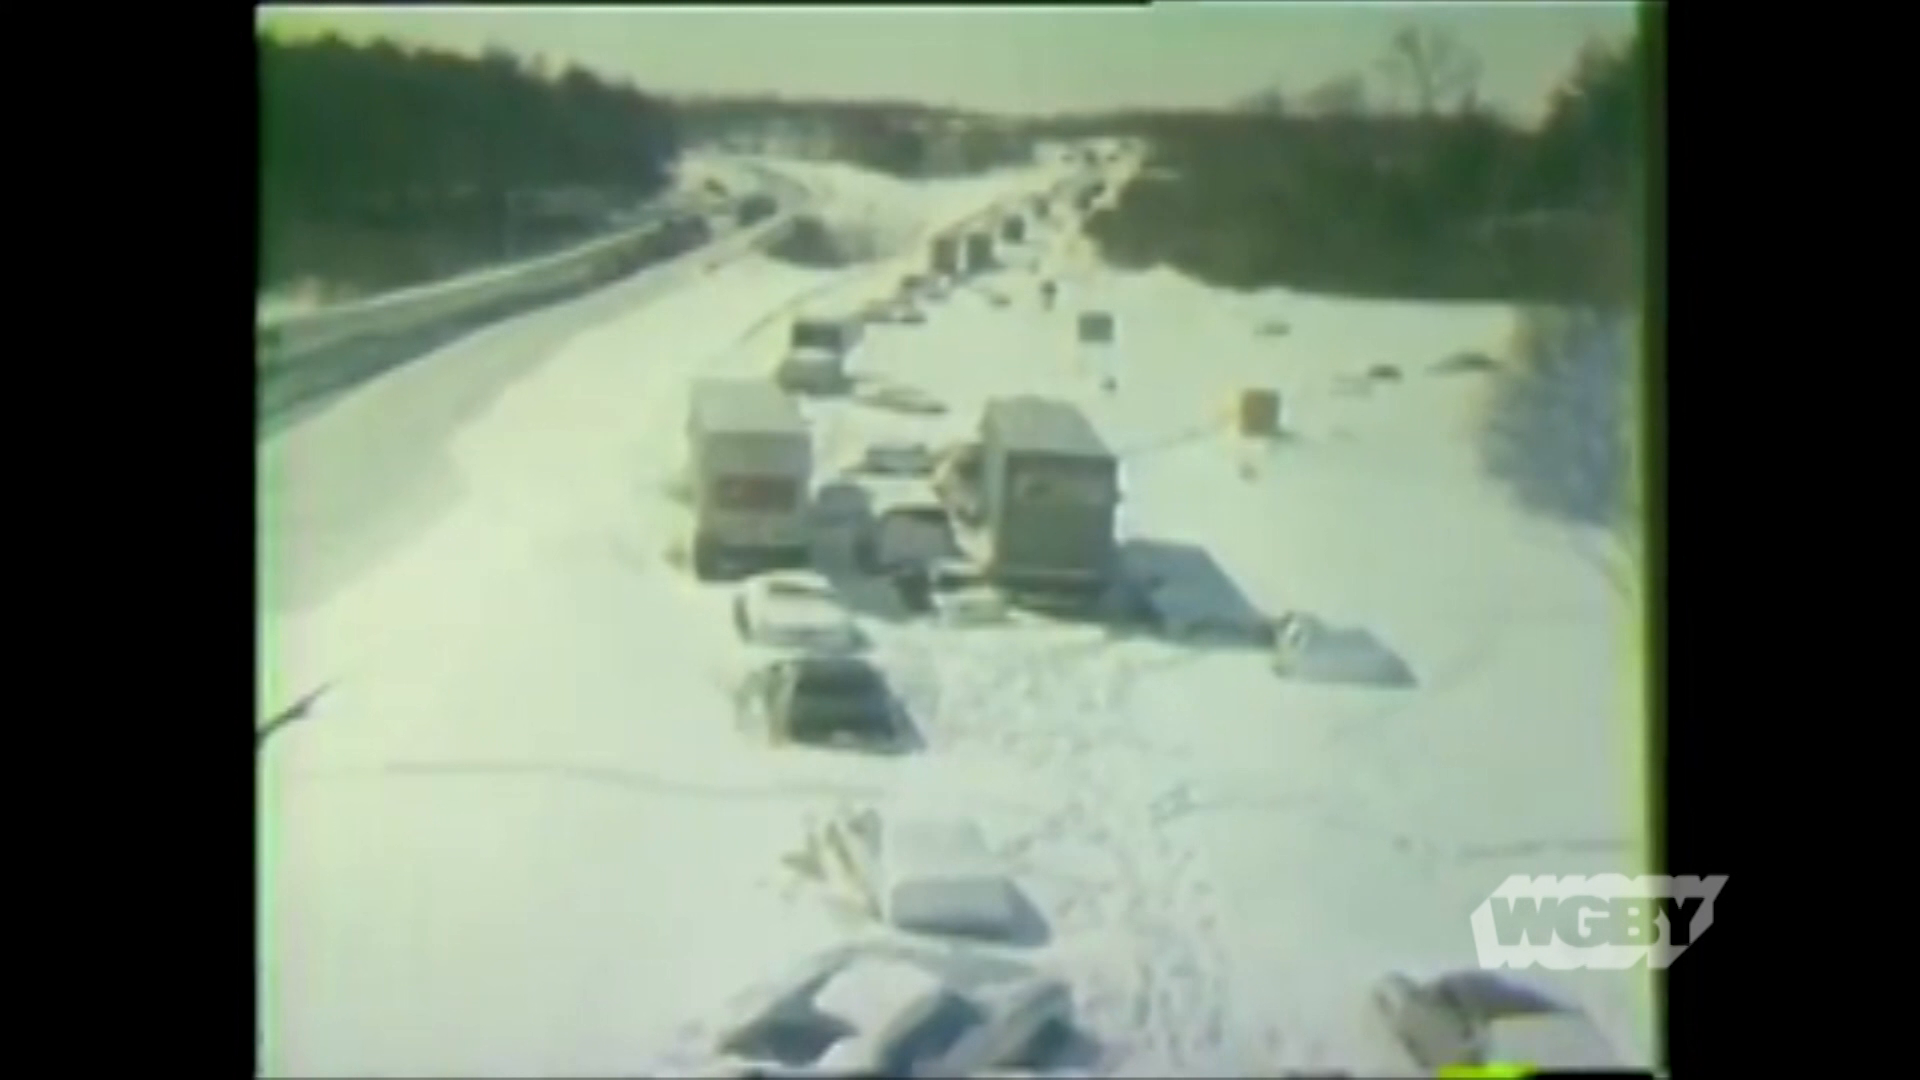 The Blizzard of '78 & Wild Winter Storms